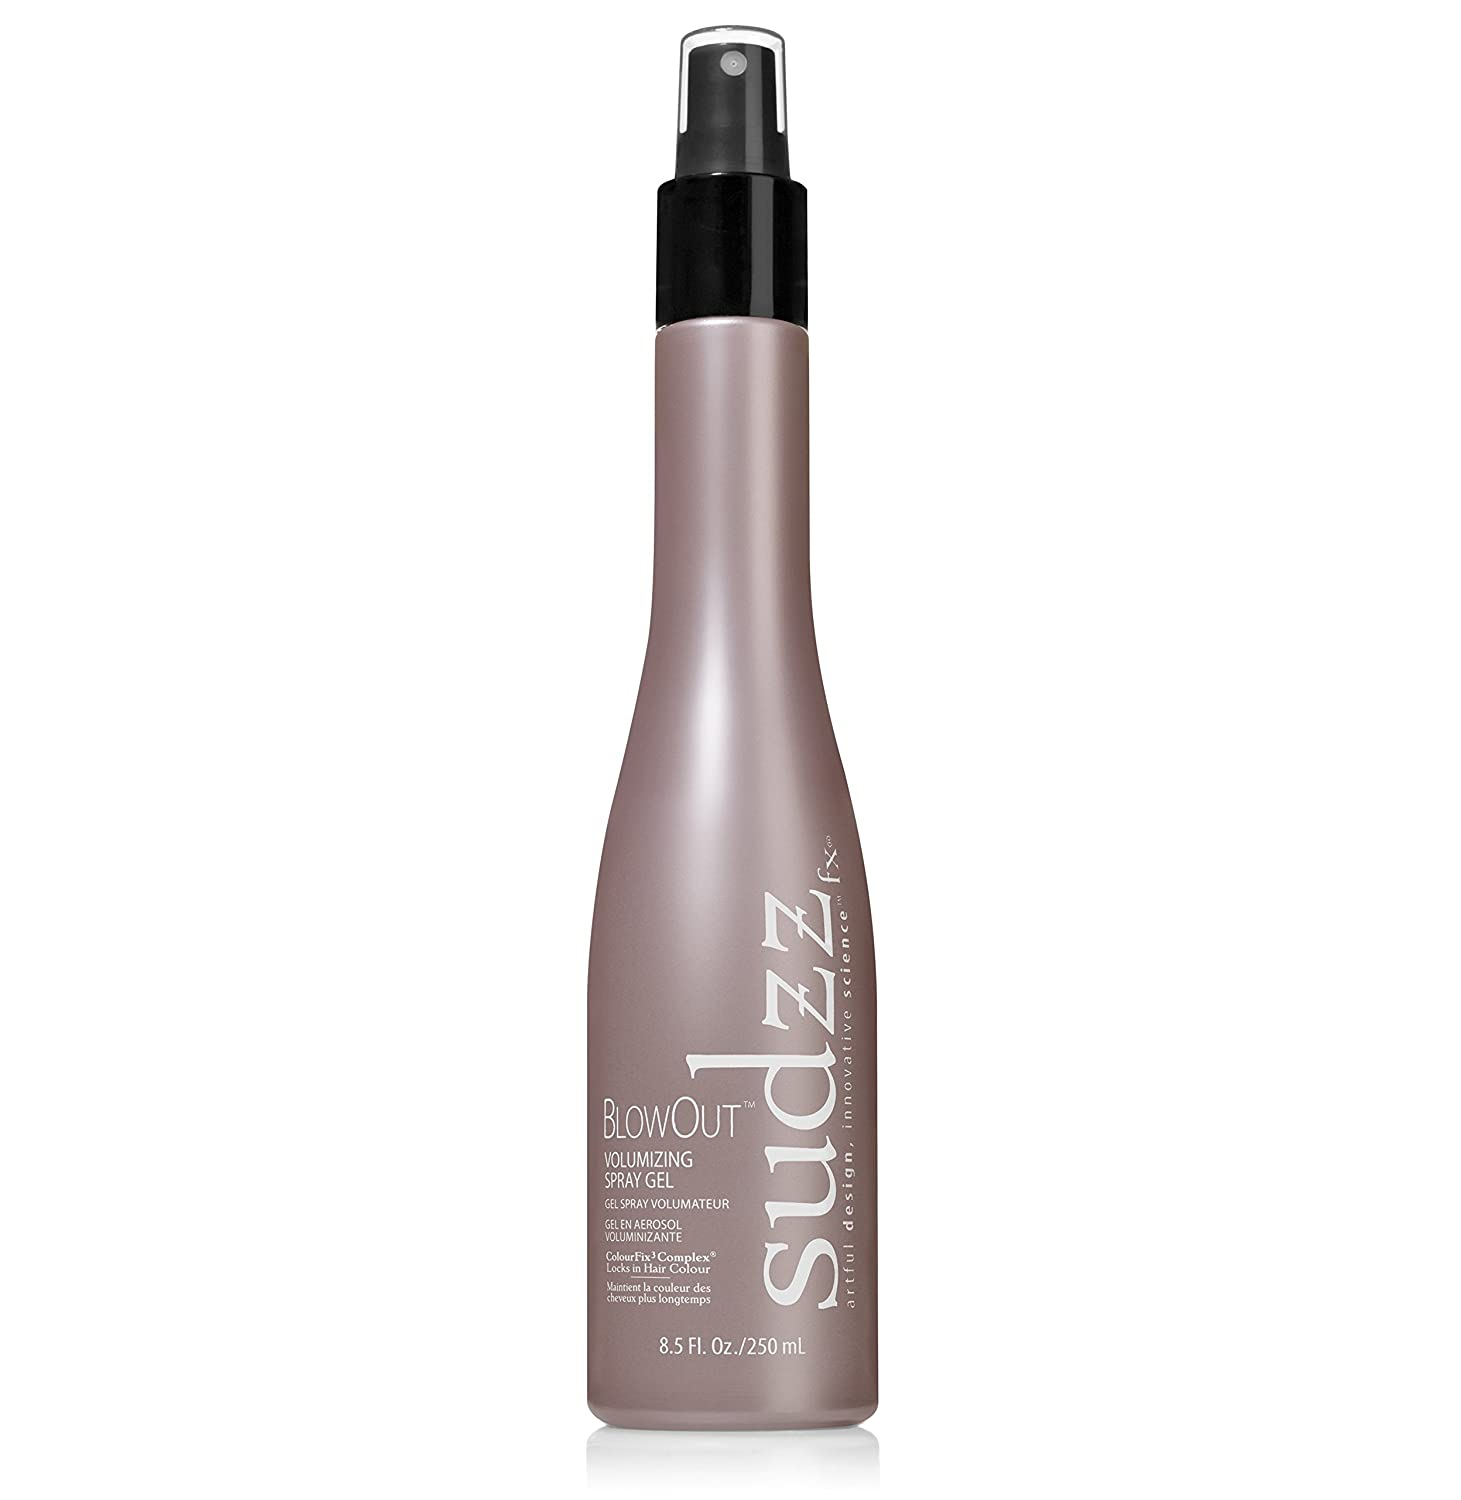 SUDZZFX store BlowOut Volumizing Clearance SALE Limited time Spray packaging Gel may vary